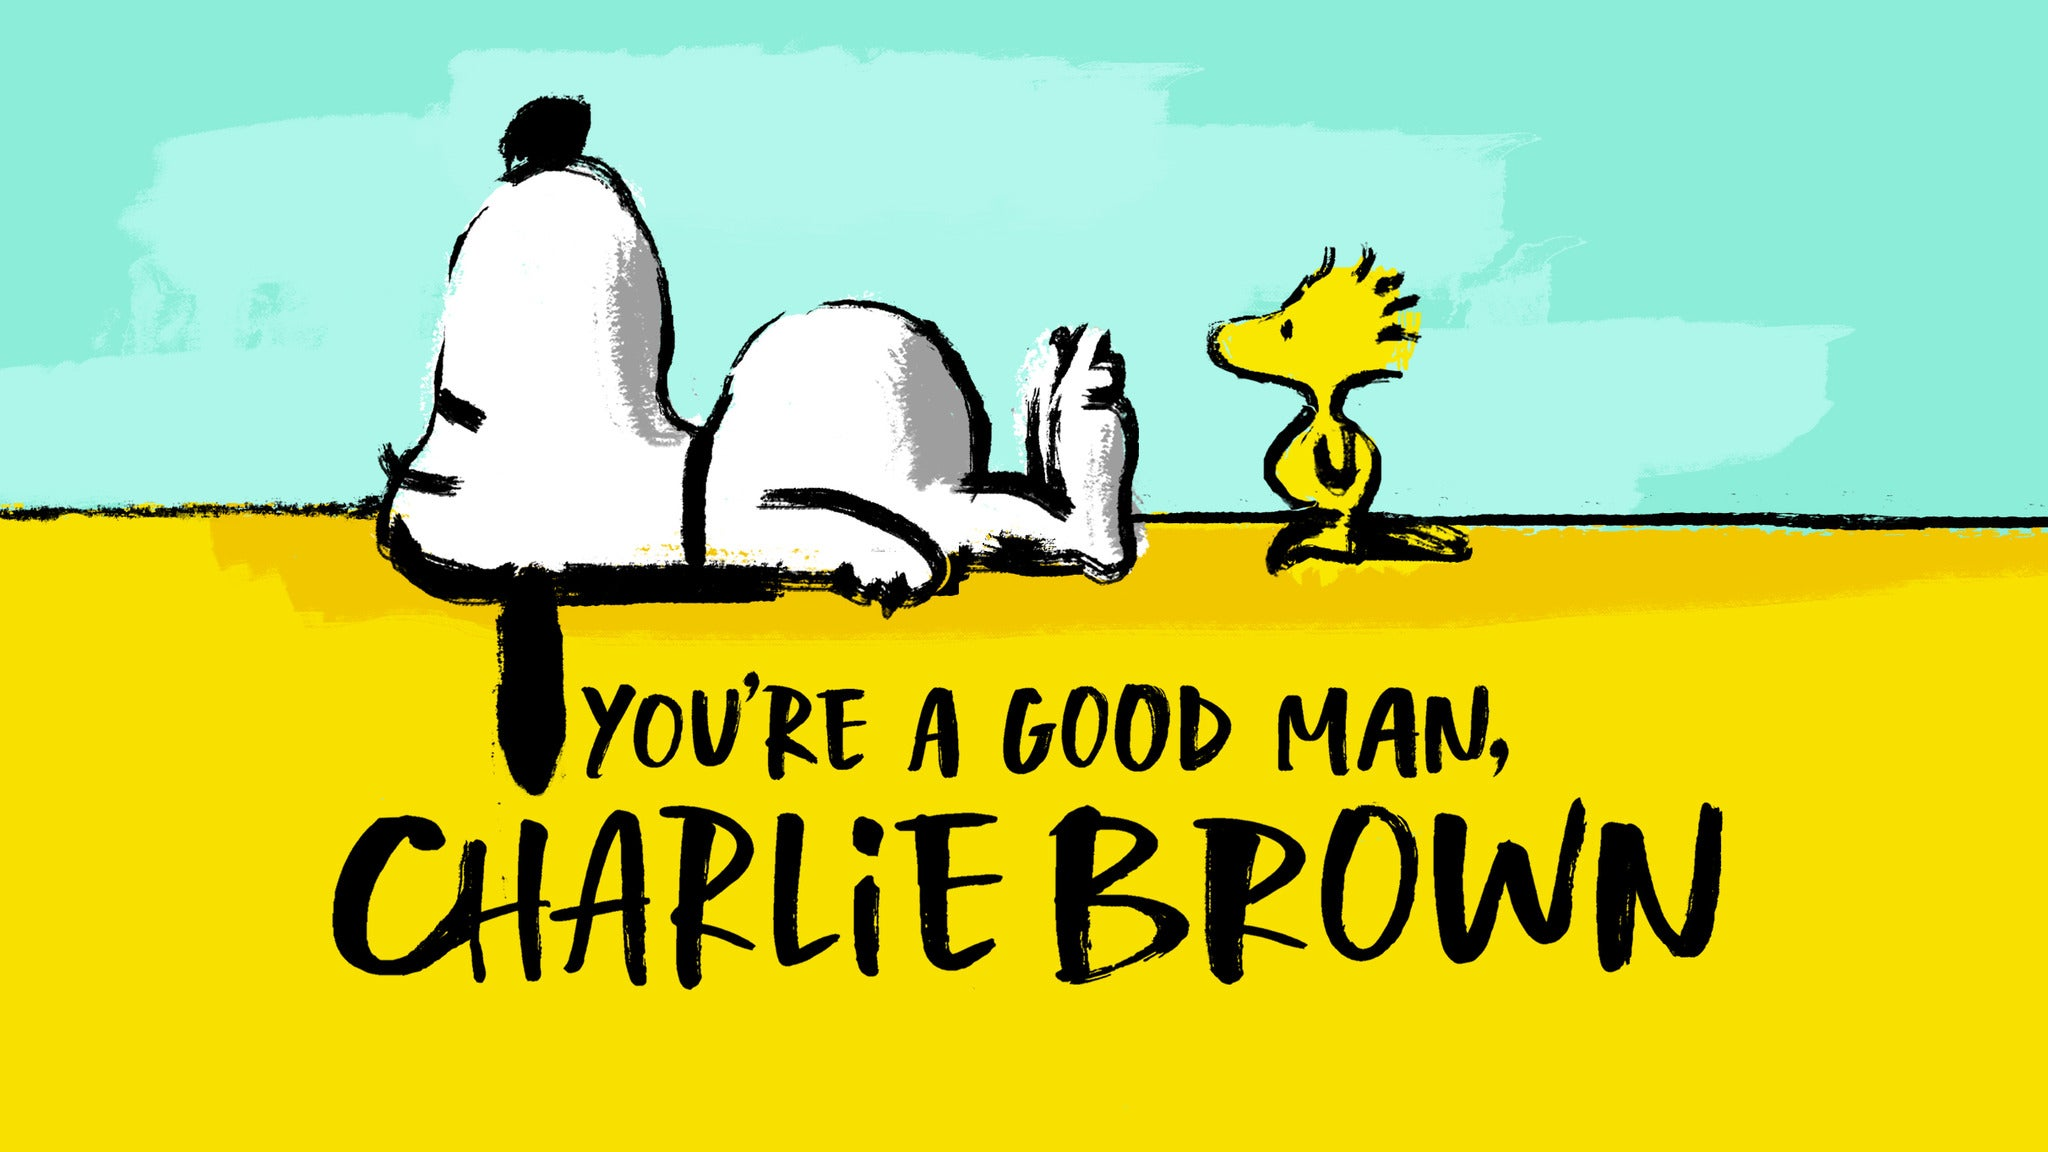 Drury Lane Theatre Presents You're A Good Man, Charlie Brown - Oakbrook Terrace, IL 60181